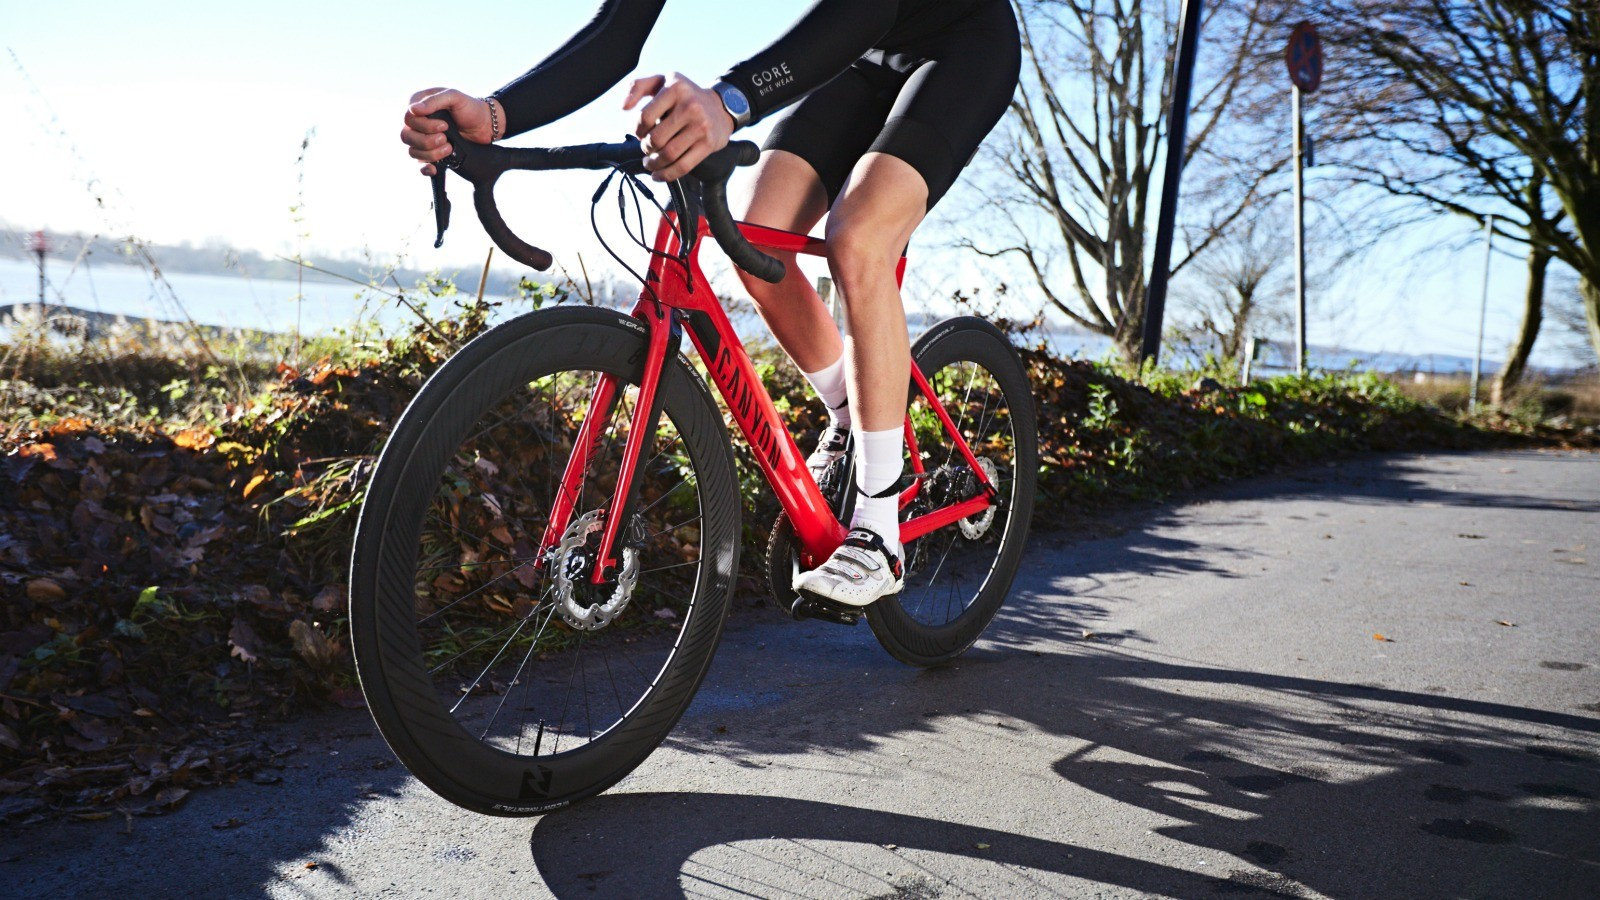 Canyon dramatically expanded its range of road disc bikes for 2017